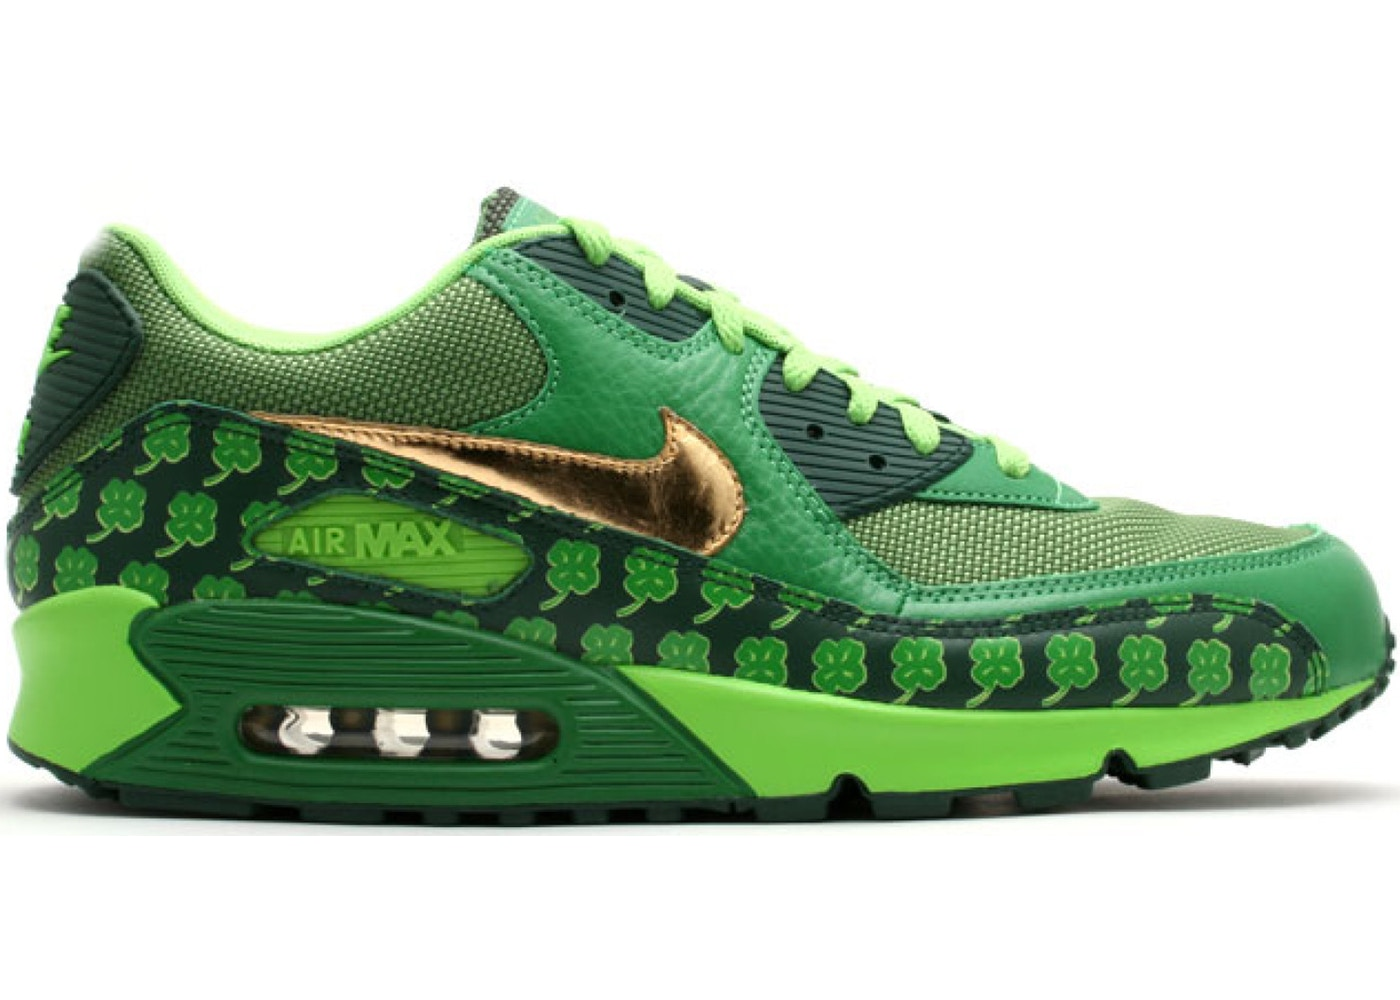 Nike Air Max 90 St. Patty's Day (2007)